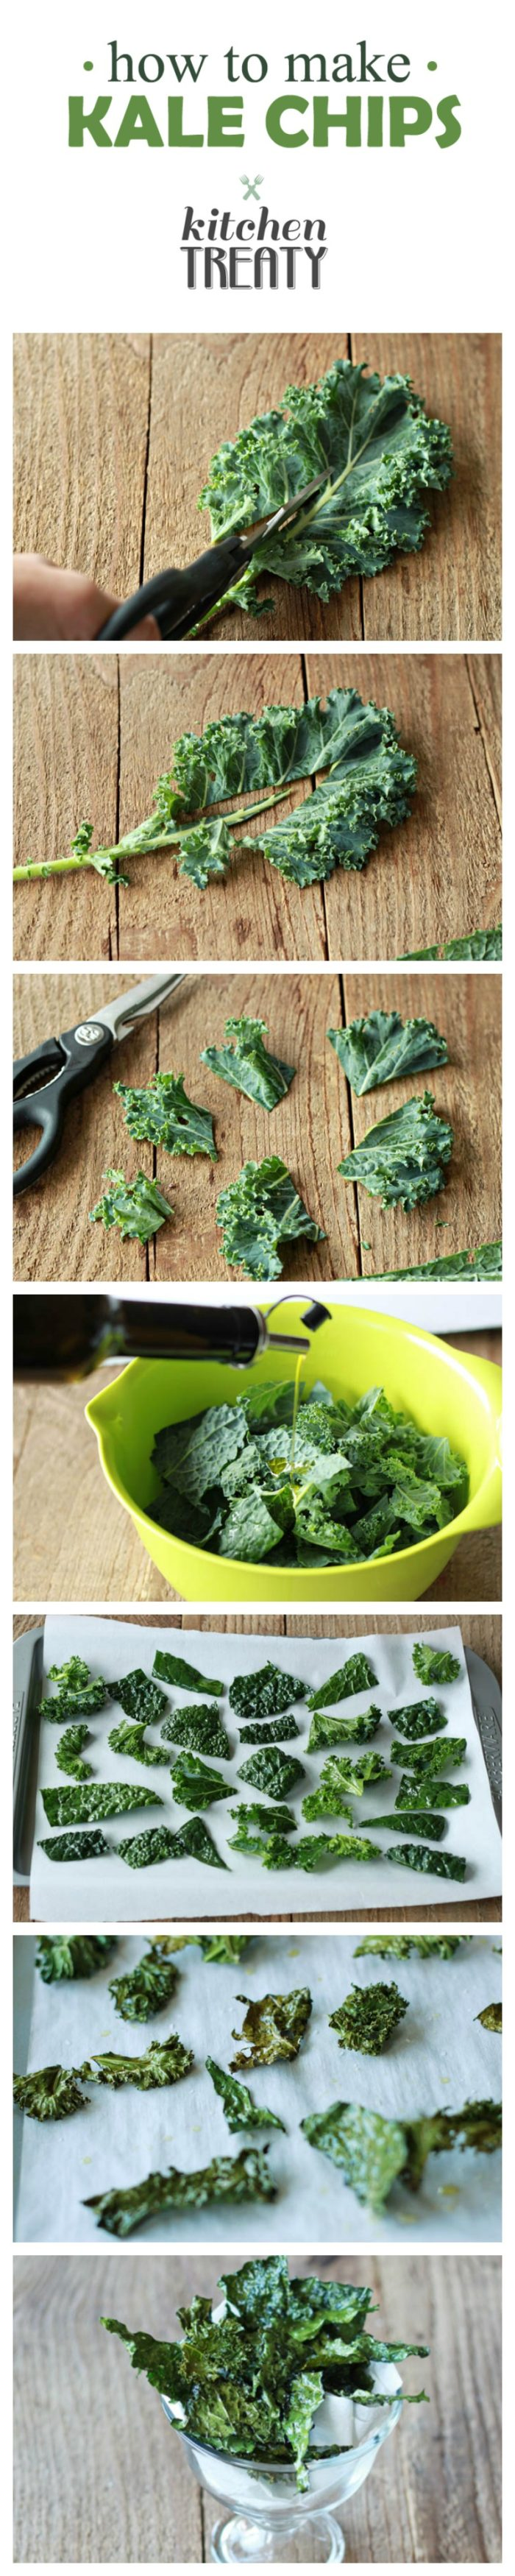 How to Make Kale Chips - Salty, crispy, addicting, and from garden to oven in 15 minutes ... making your own kale chips couldn't be easier.